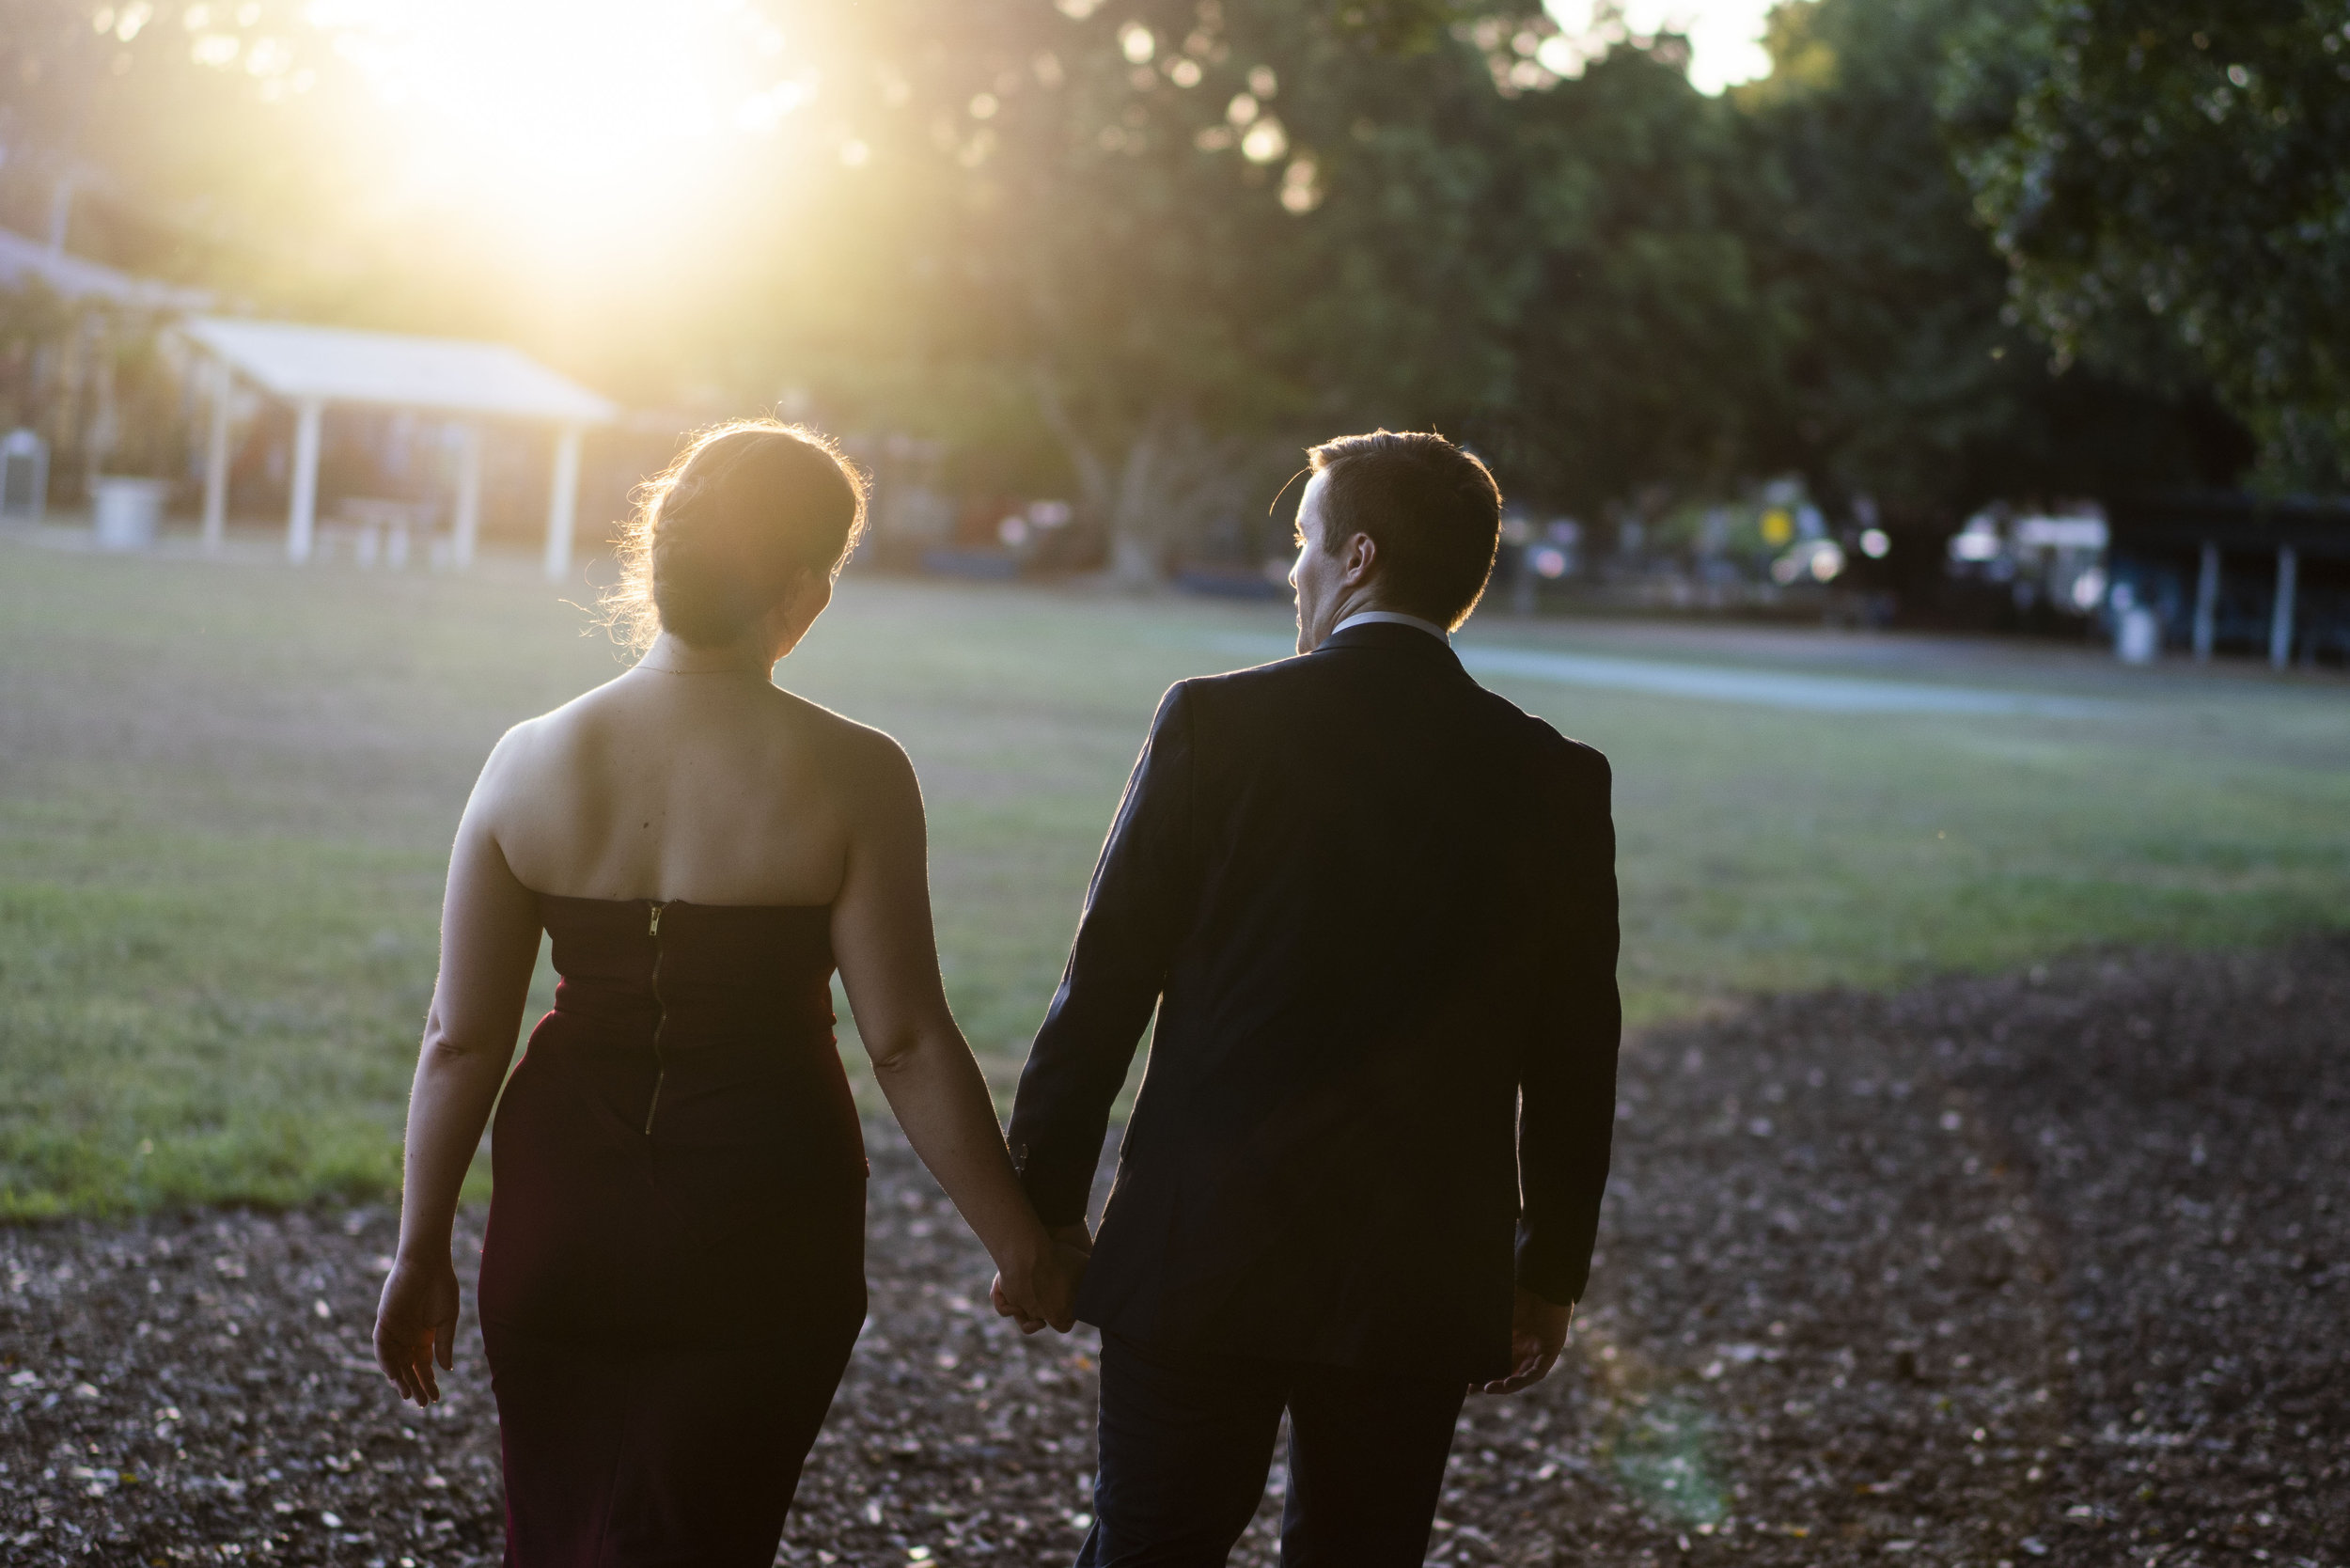 Engagement shoots - Create gorgeous engagement images that give you insight to what your wedding photos will look like.